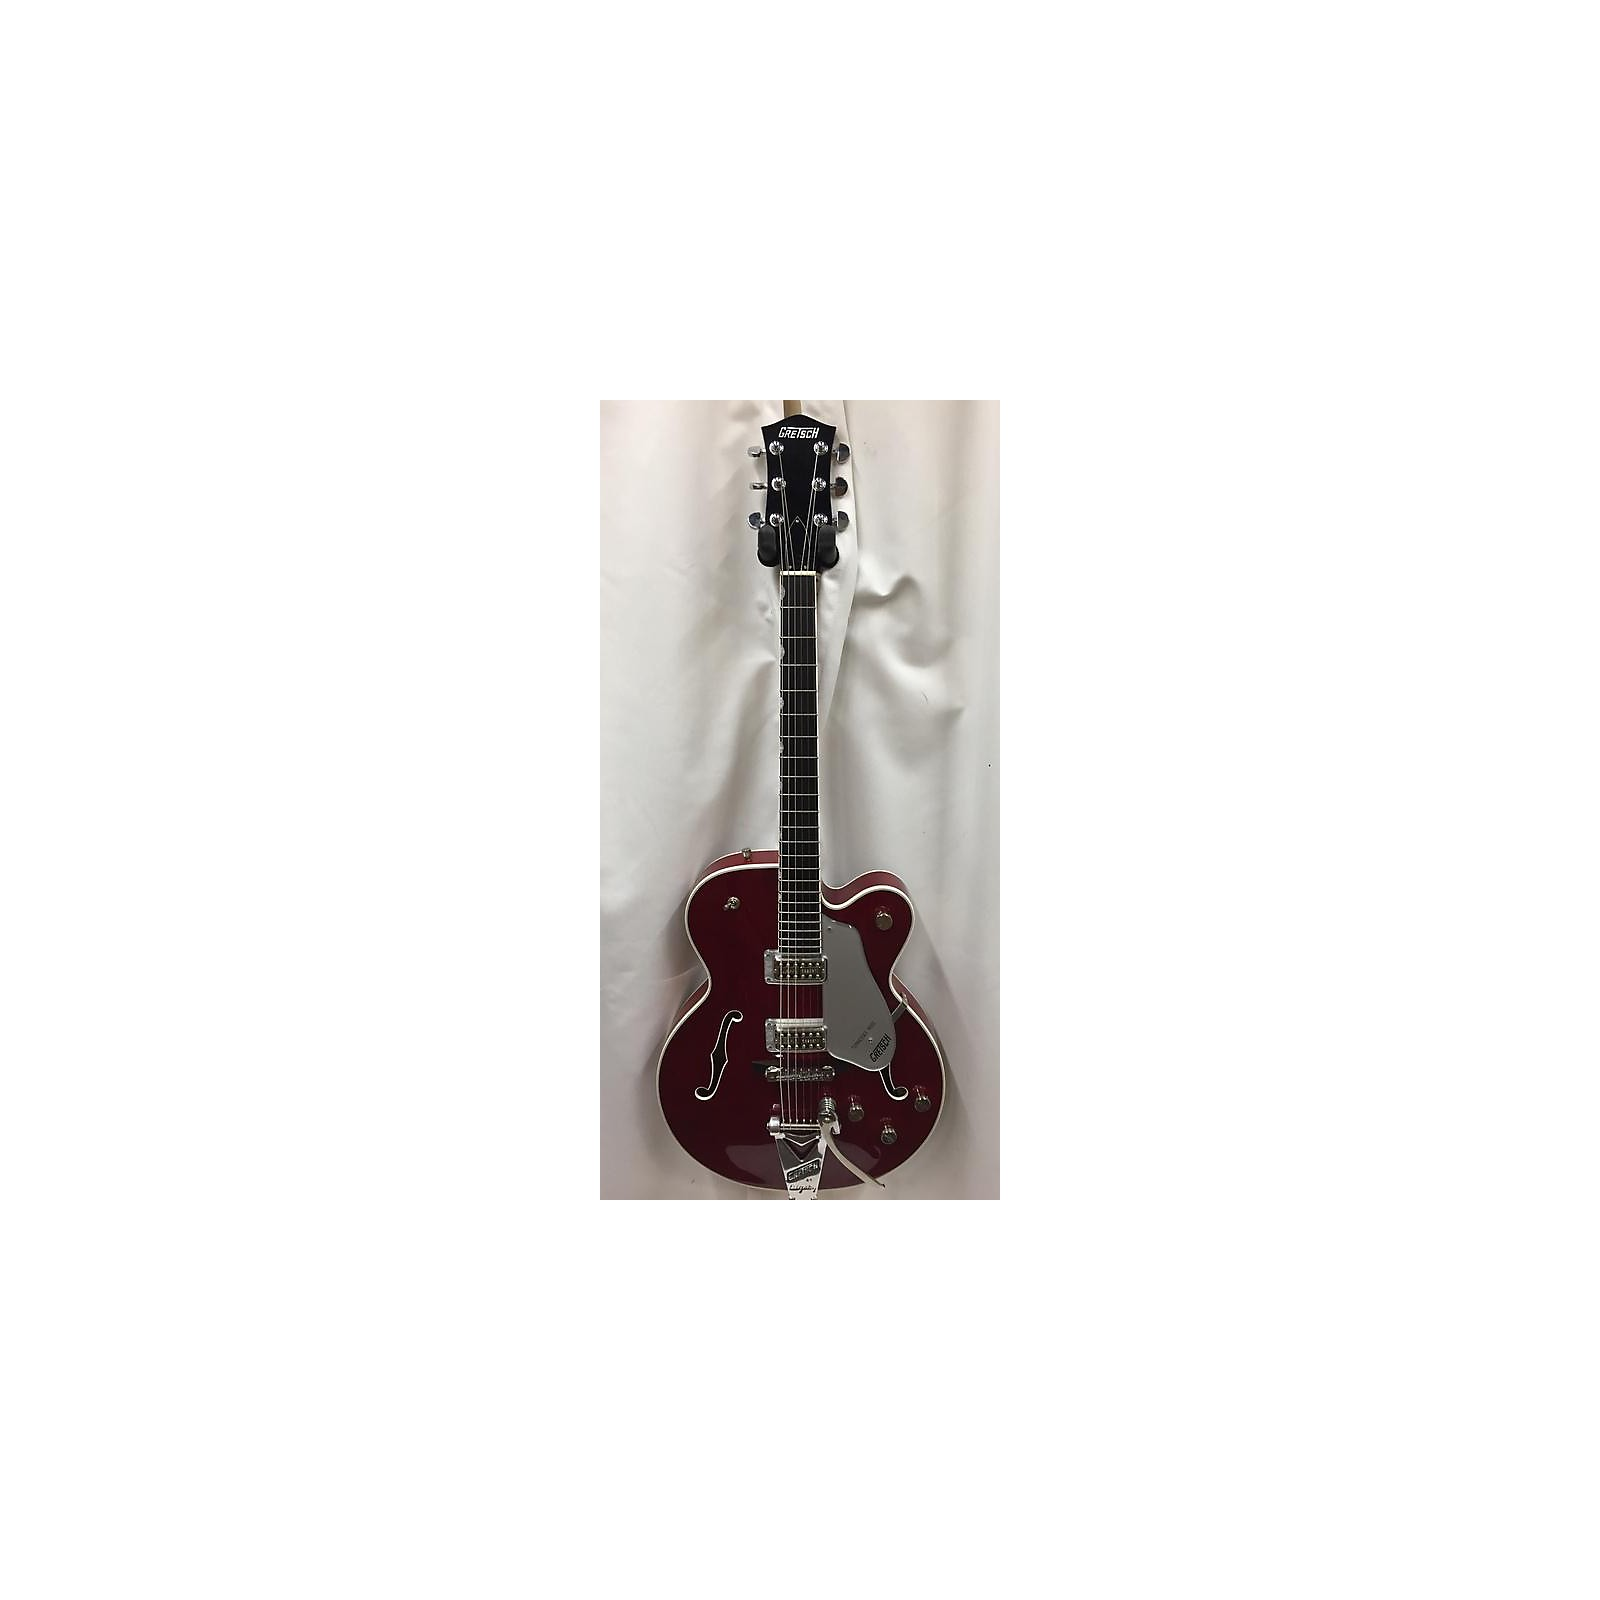 Gretsch Guitars 1997 G6119T Chet Atkins Signature Tennessee Rose Hollow Body Electric Guitar